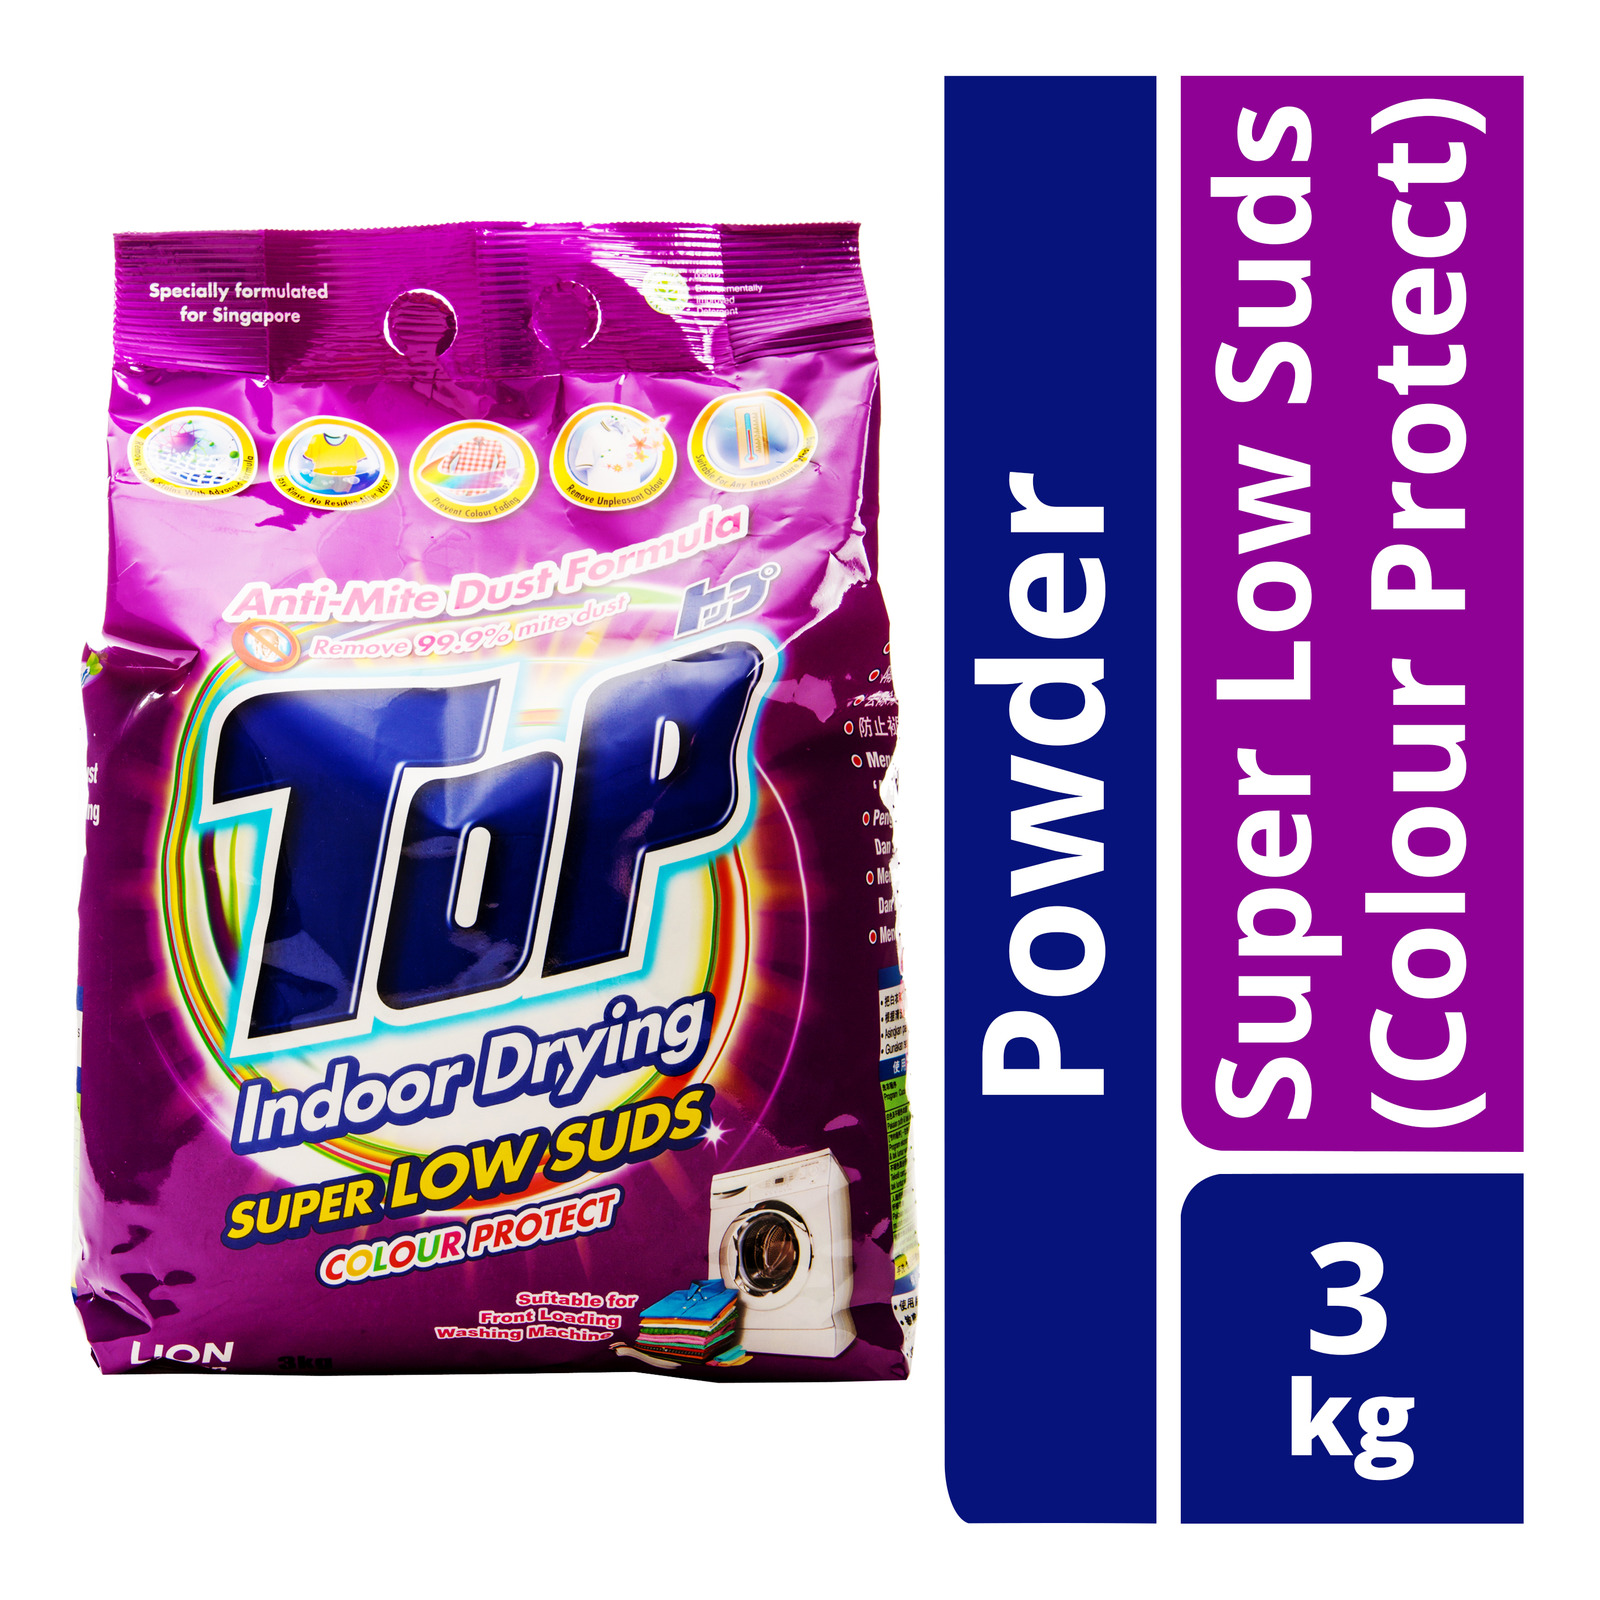 Top Detergent Powder Packet Super Low Suds - Colour Protect